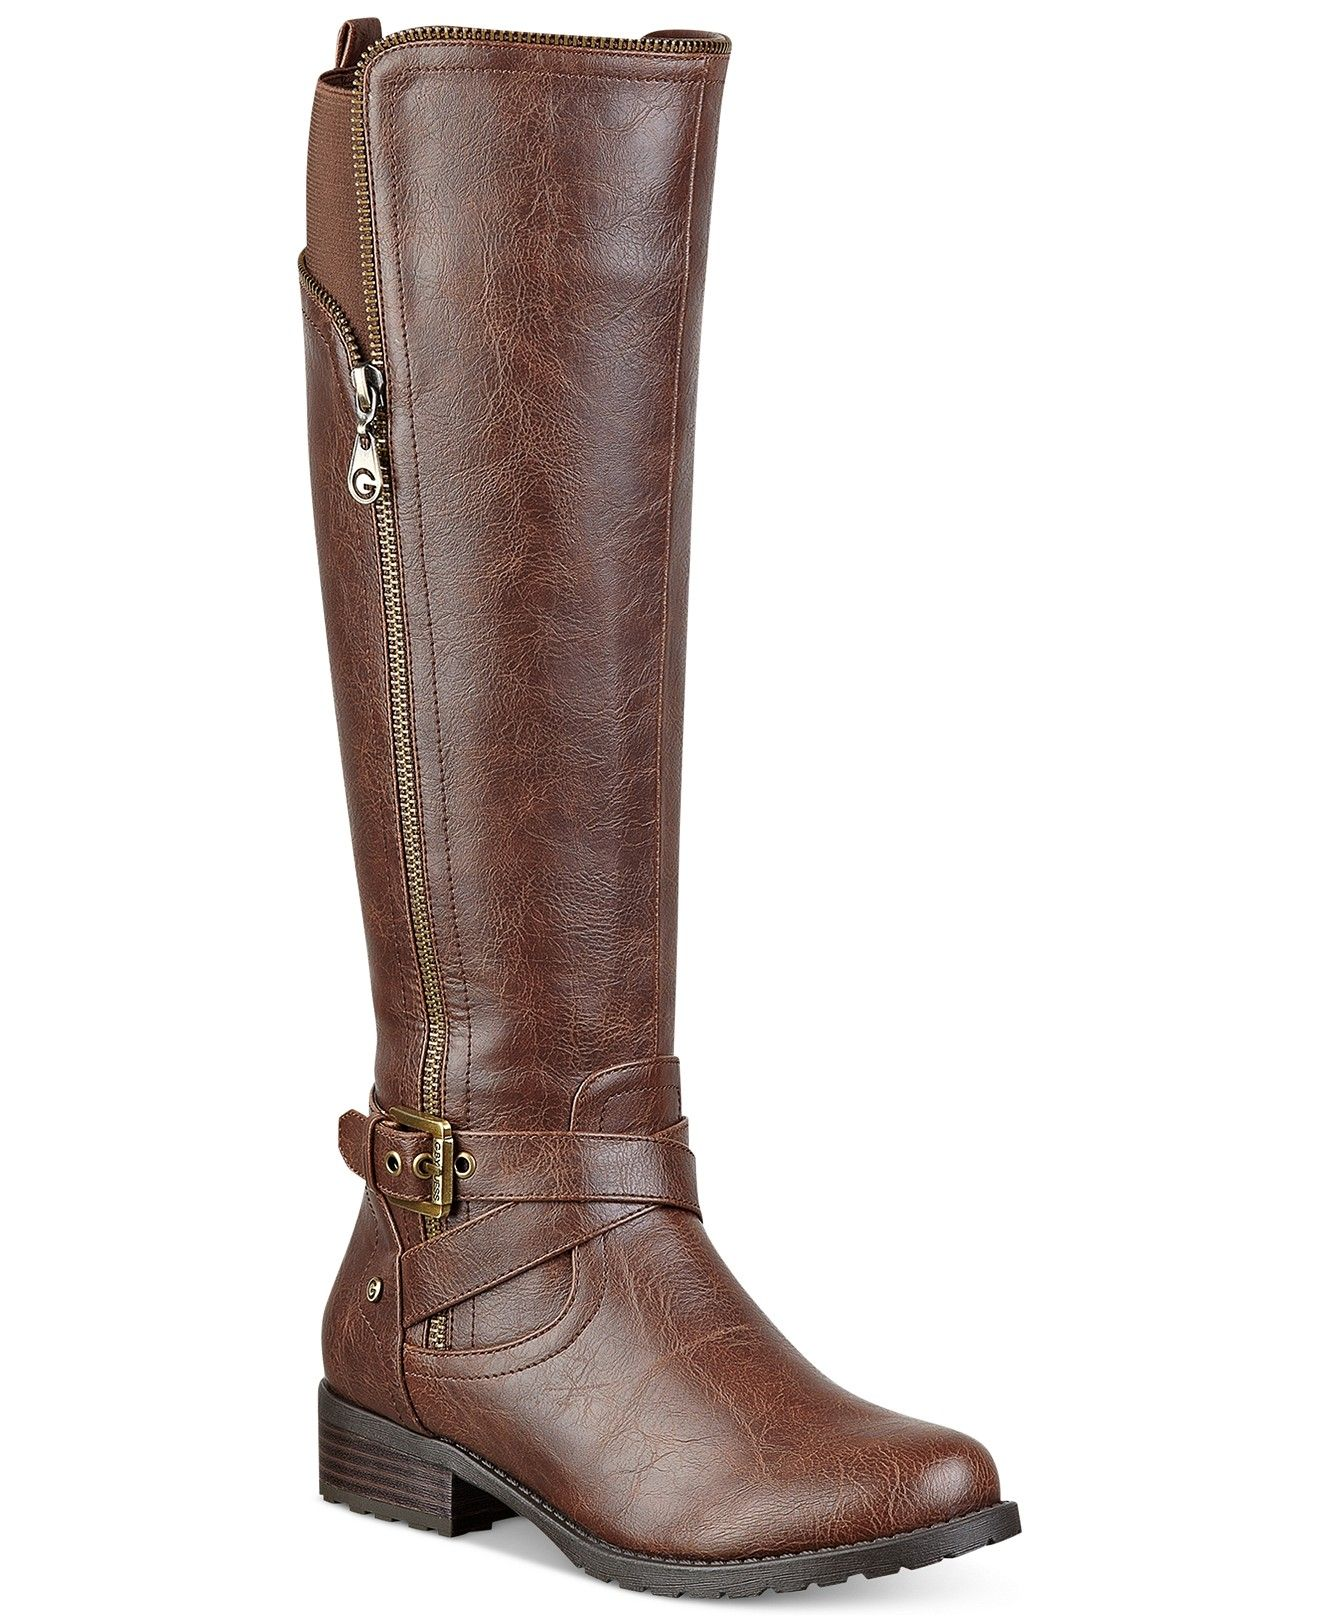 cf57c88c314 G by GUESS Women's Halsey Tall Shaft Riding Boots - Sale & Clearance - Shoes  - Macy's